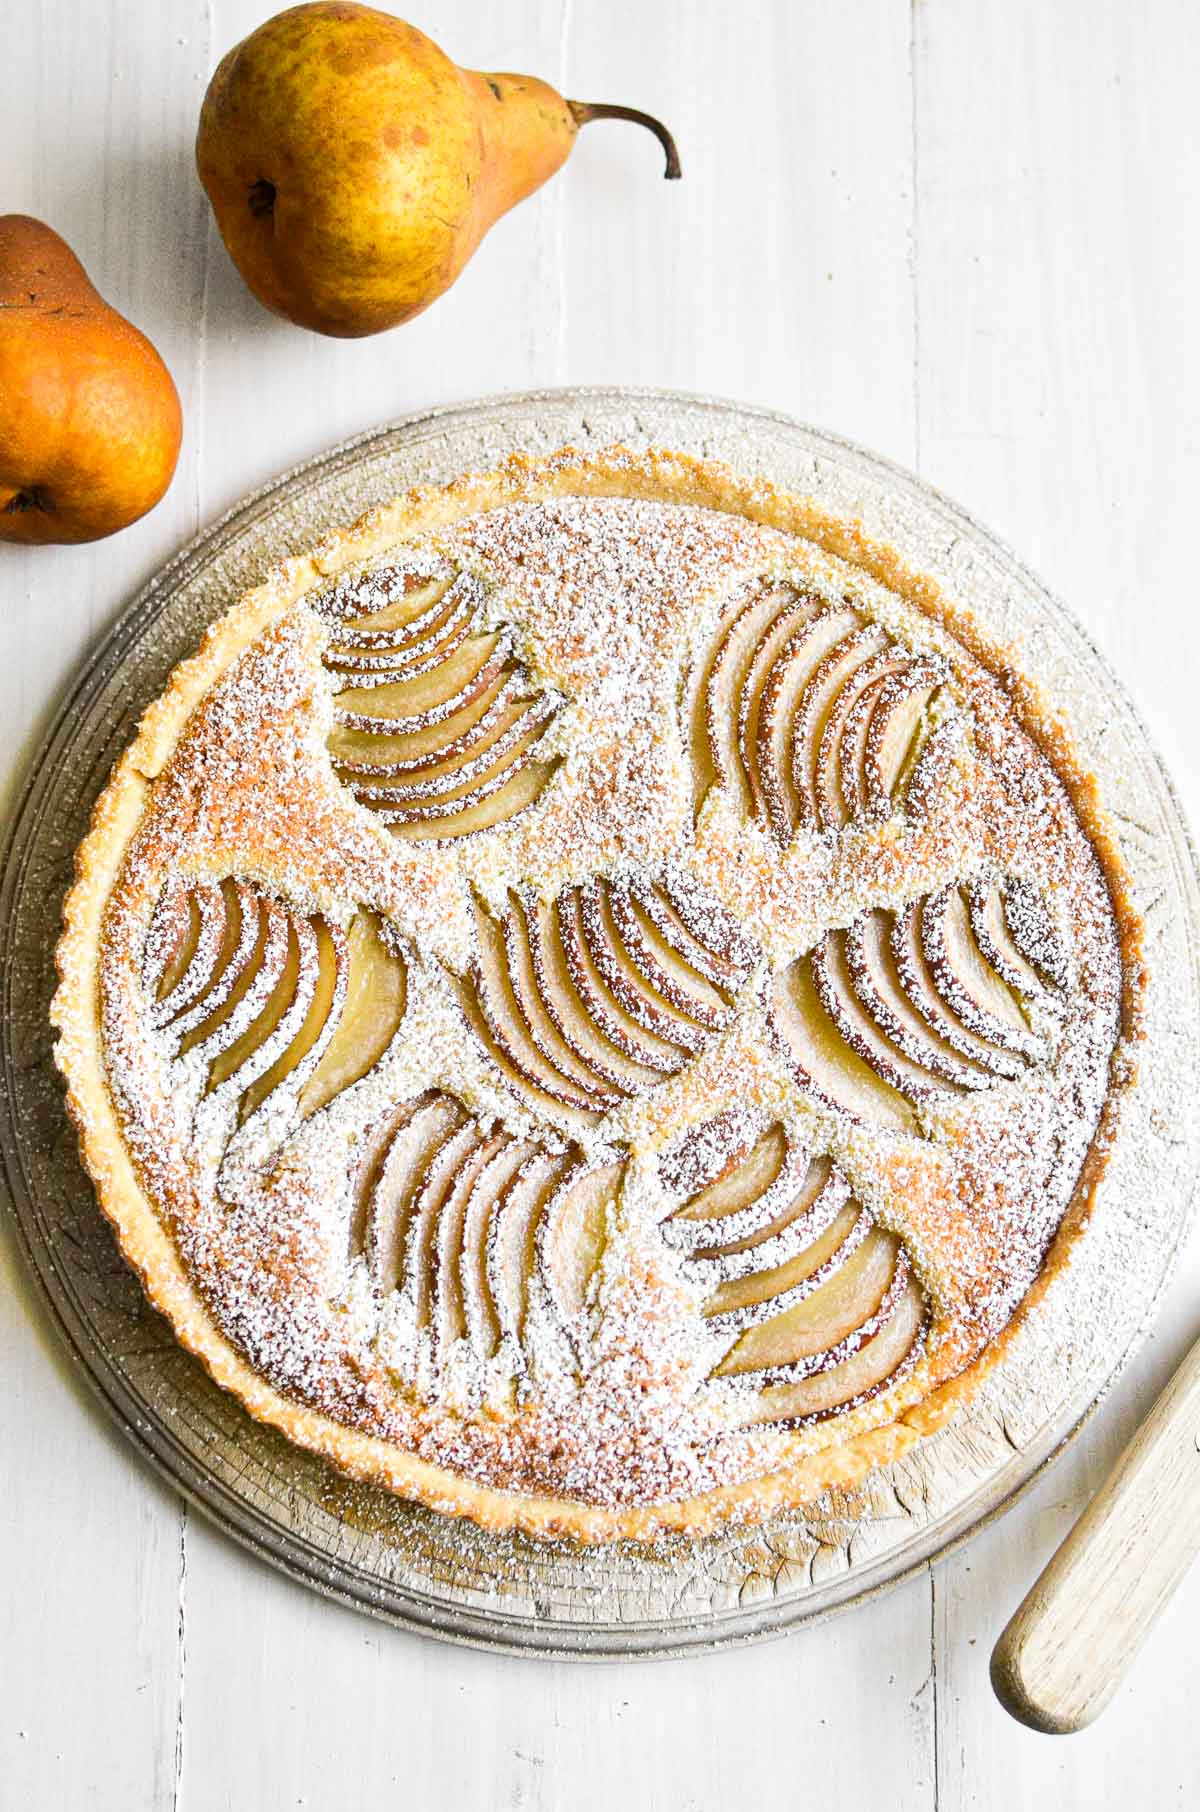 Pear and almond tart, dusted with powdered sugar.